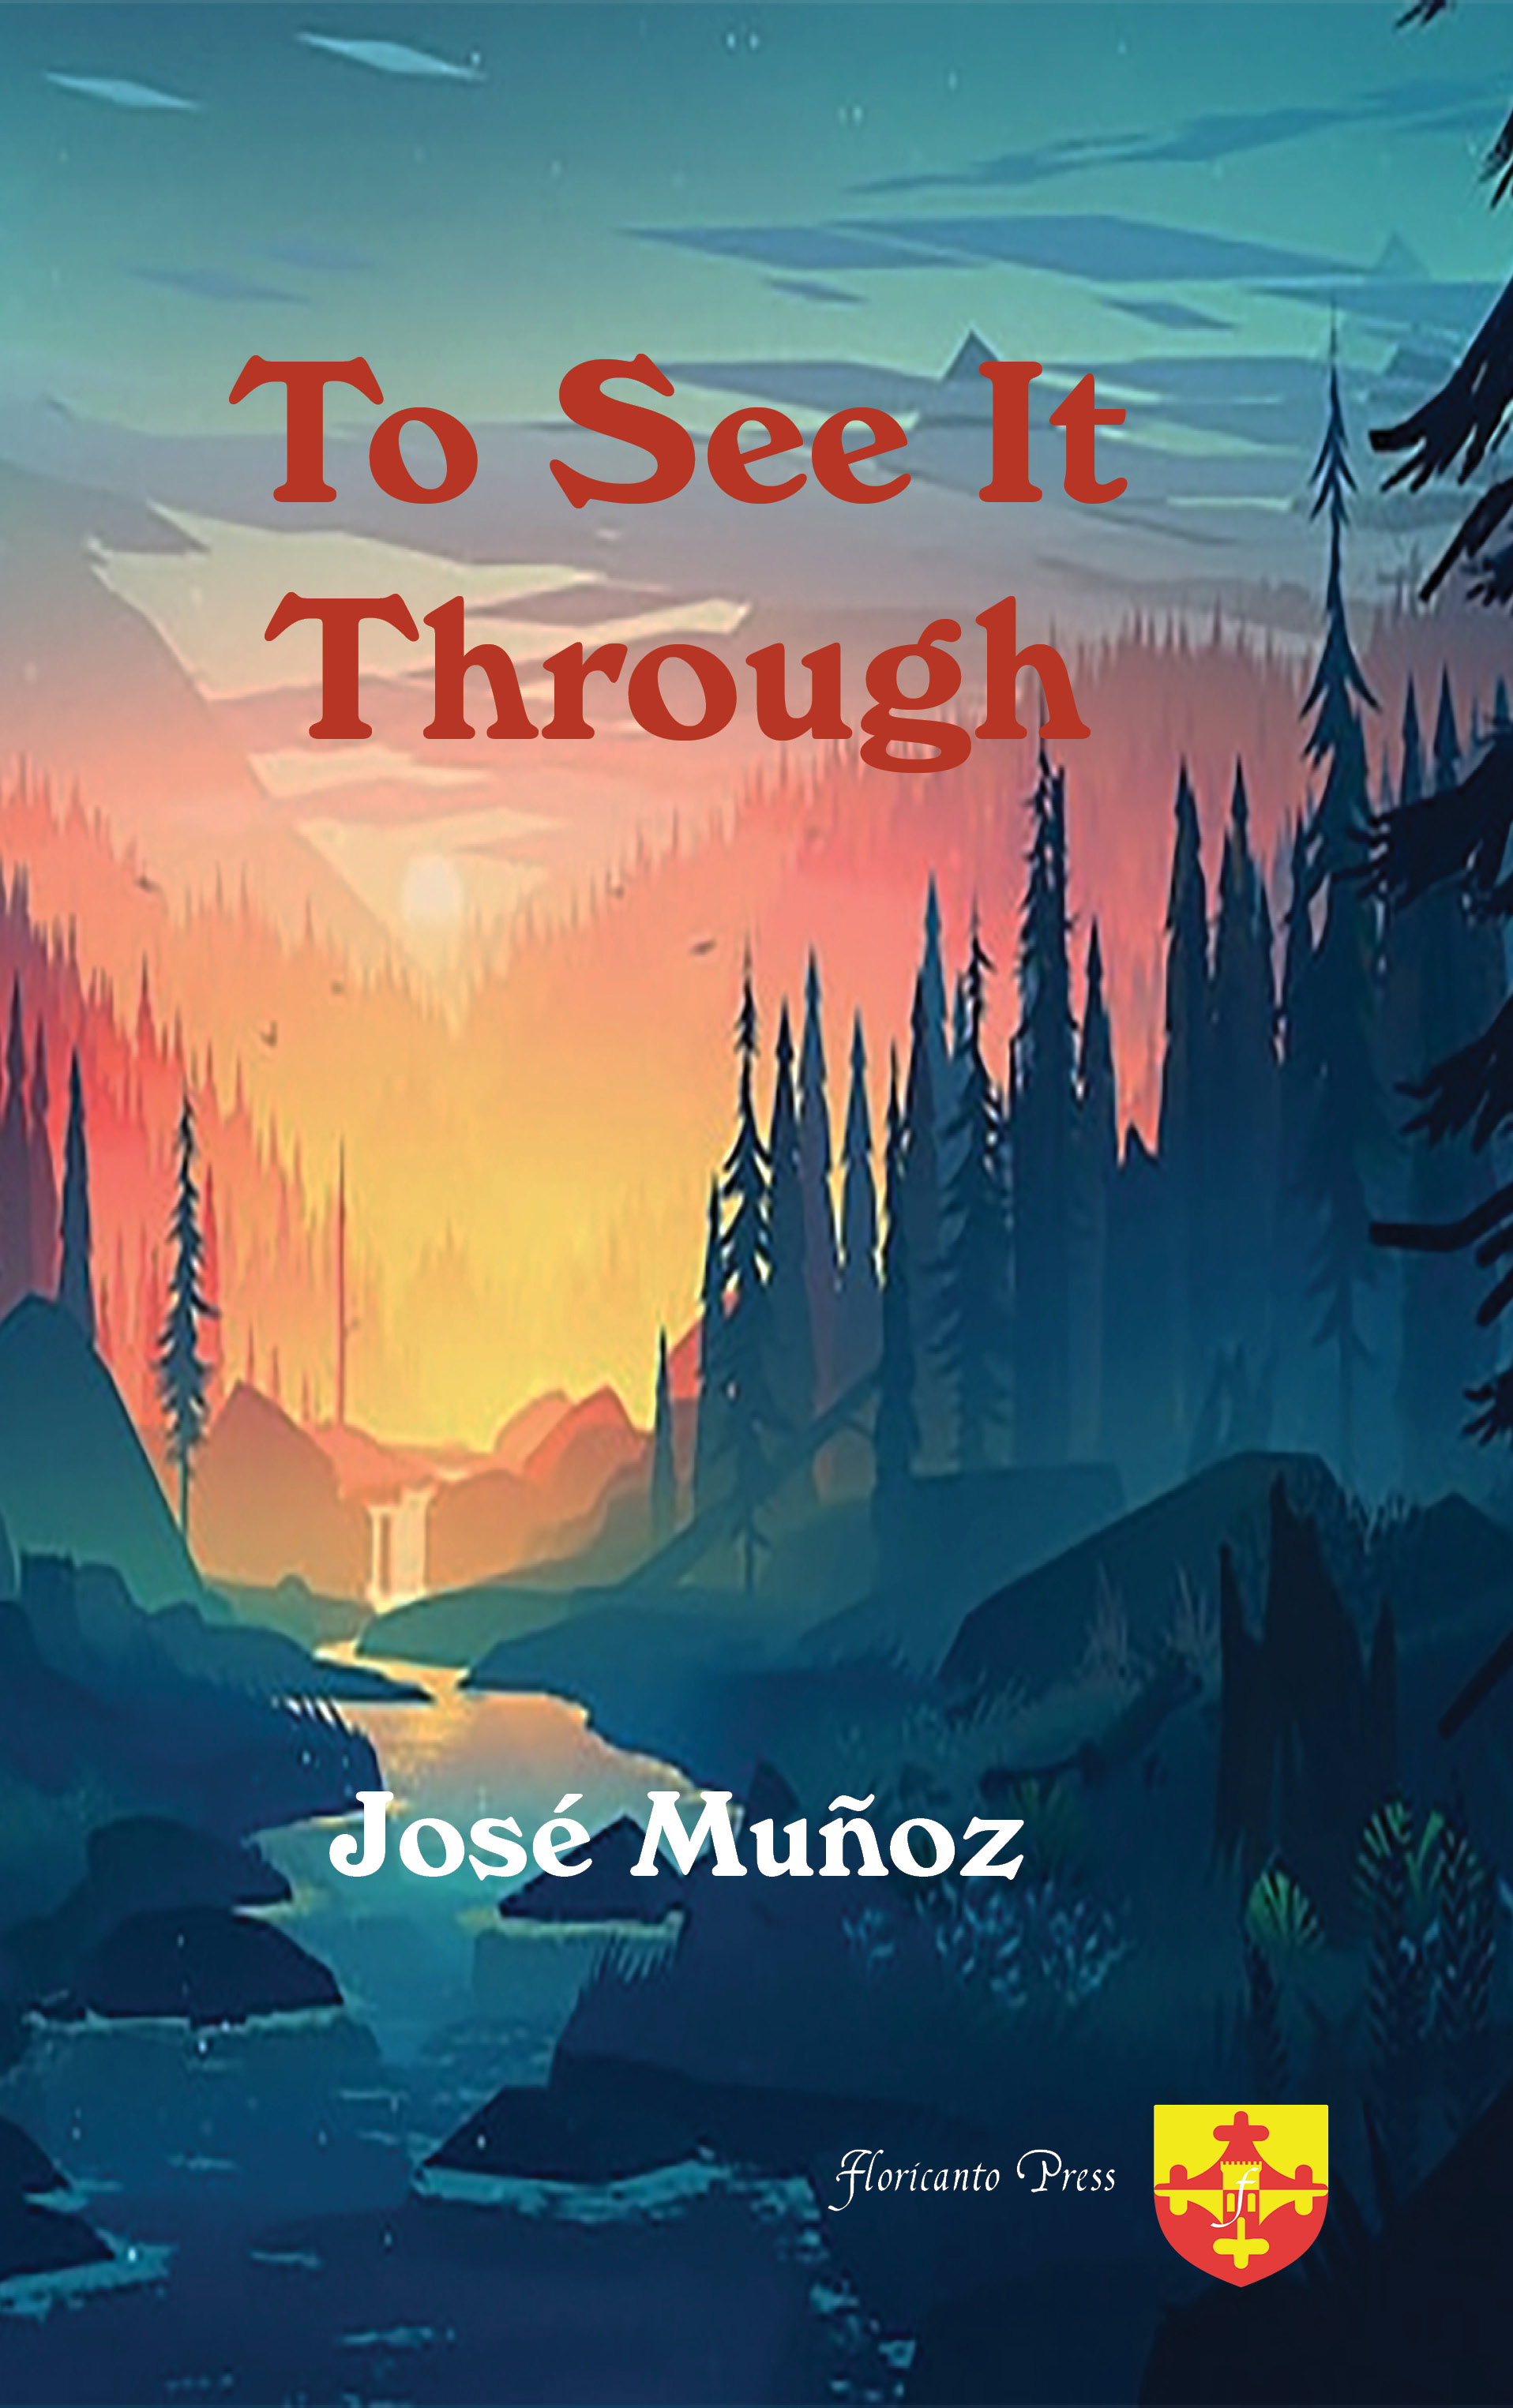 To See It Through. By Jose Munoz.